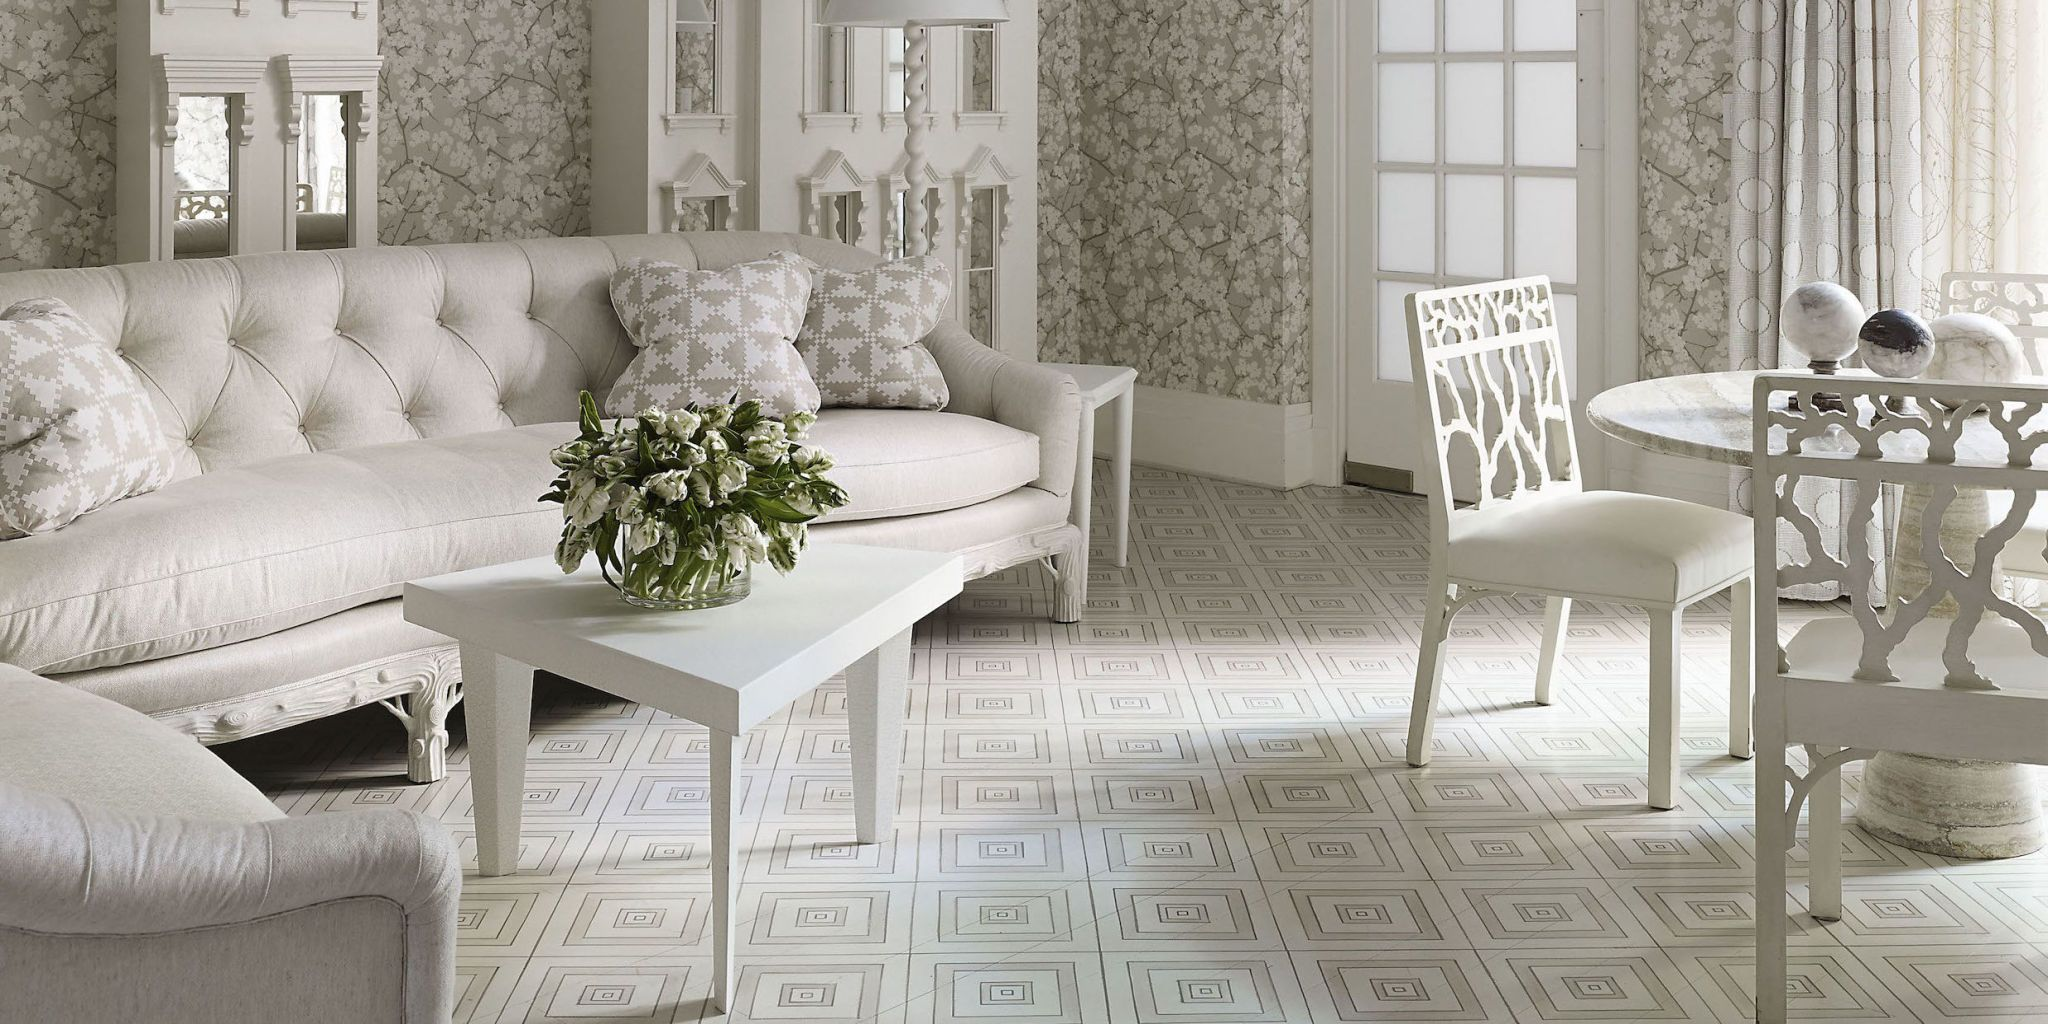 White furniture room ideas Modern White Living Room Furniture Elle Decor 20 White Living Room Furniture Ideas White Chairs And Couches